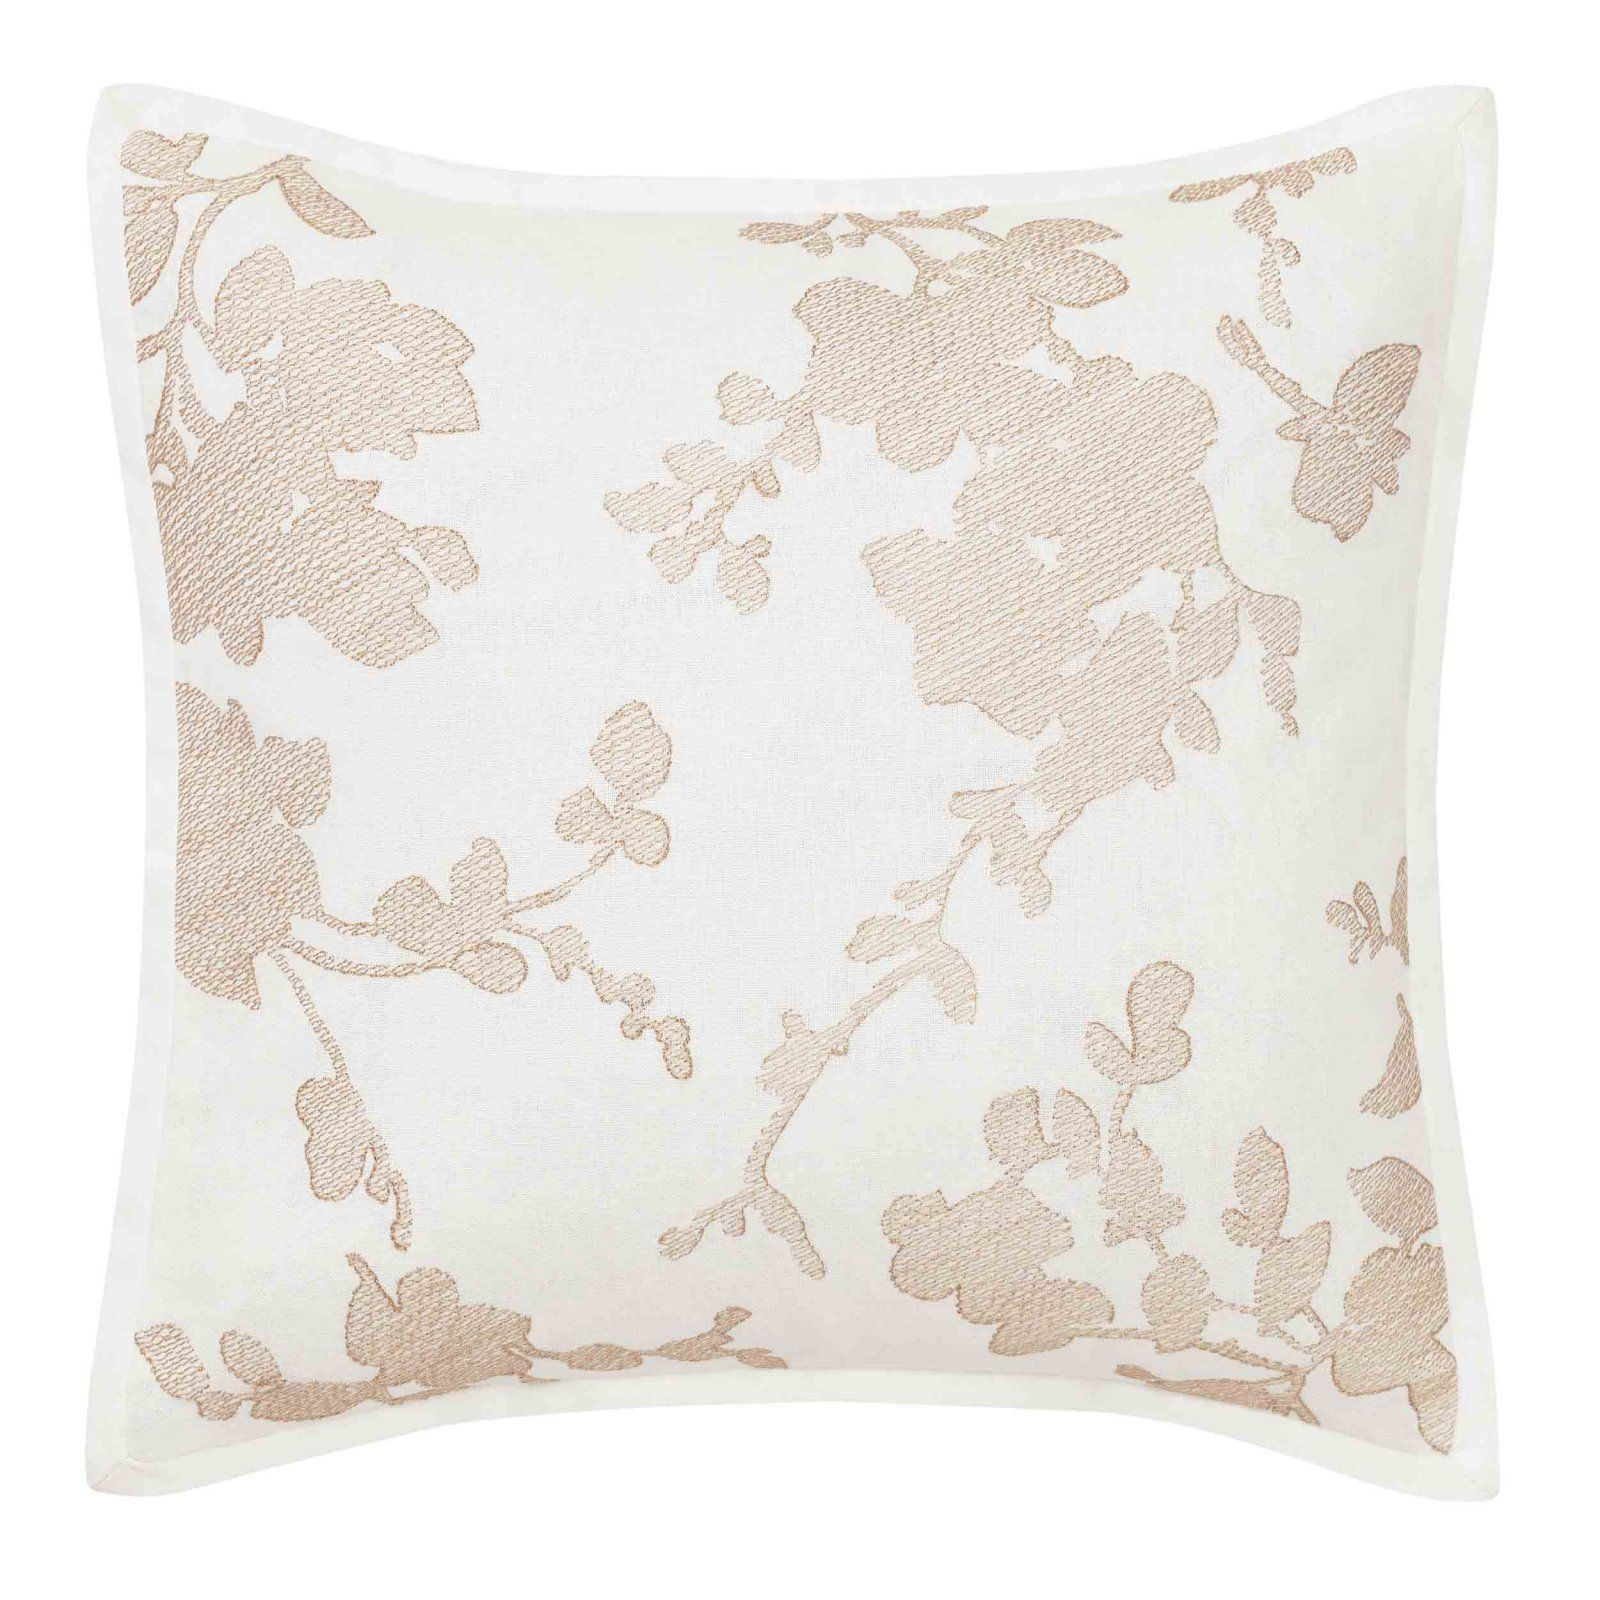 Lorene Crewel Embroidered Square Pillow By Laura Ashley Throw Pillows Square Pillow Embroidered Pillow Covers